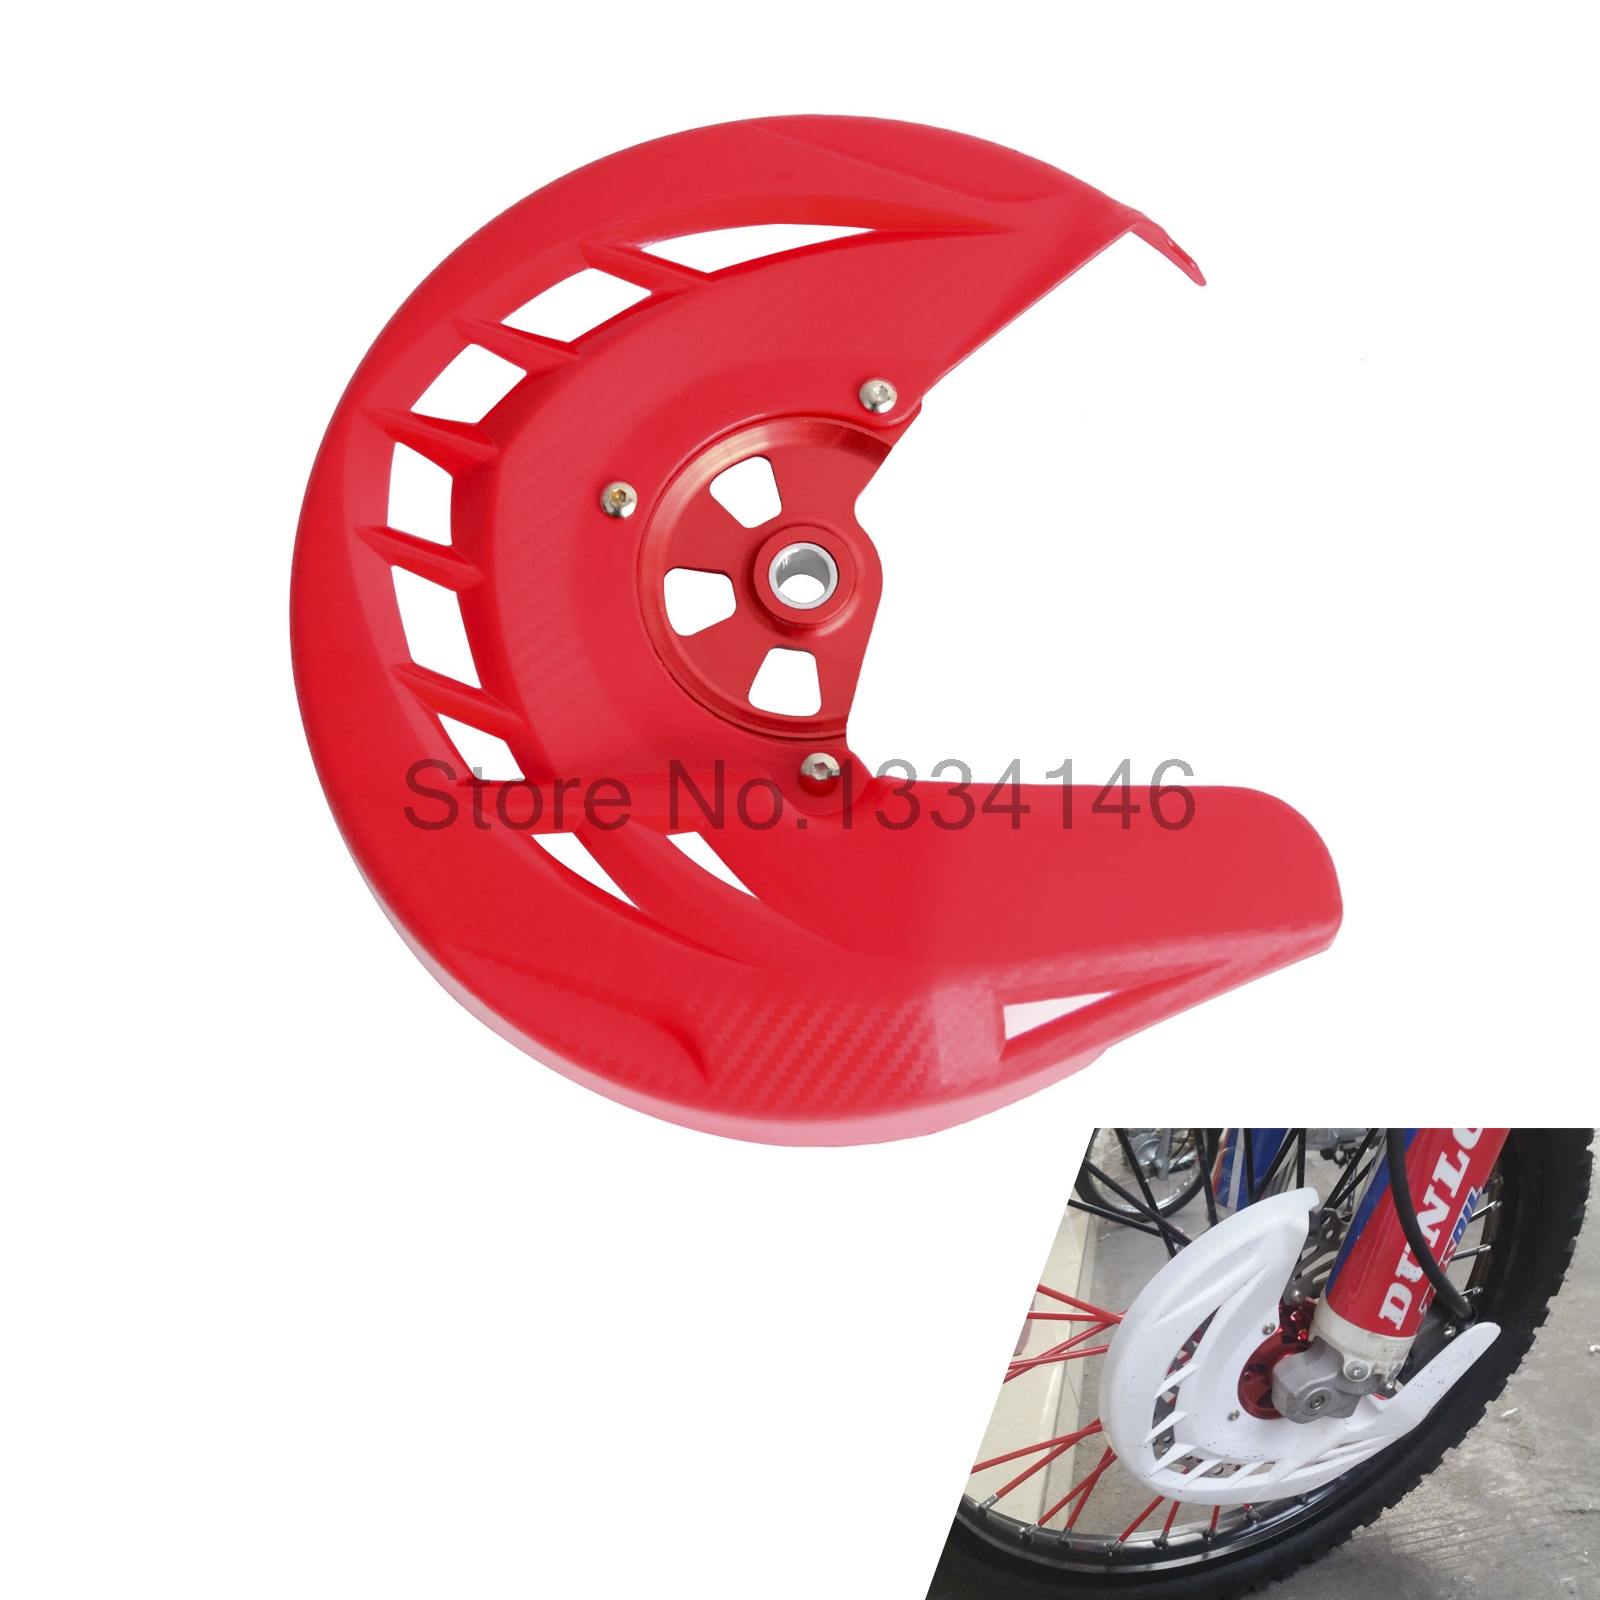 Red Front Brake Disc Rotor Guard Cover For Honda CRF250L CRF250M 2012 2013 2014 2015 red motorcycle bike parts front brake disc rotor cover guard w mounting for honda crf250l m 2012 2013 2014 2015 2016